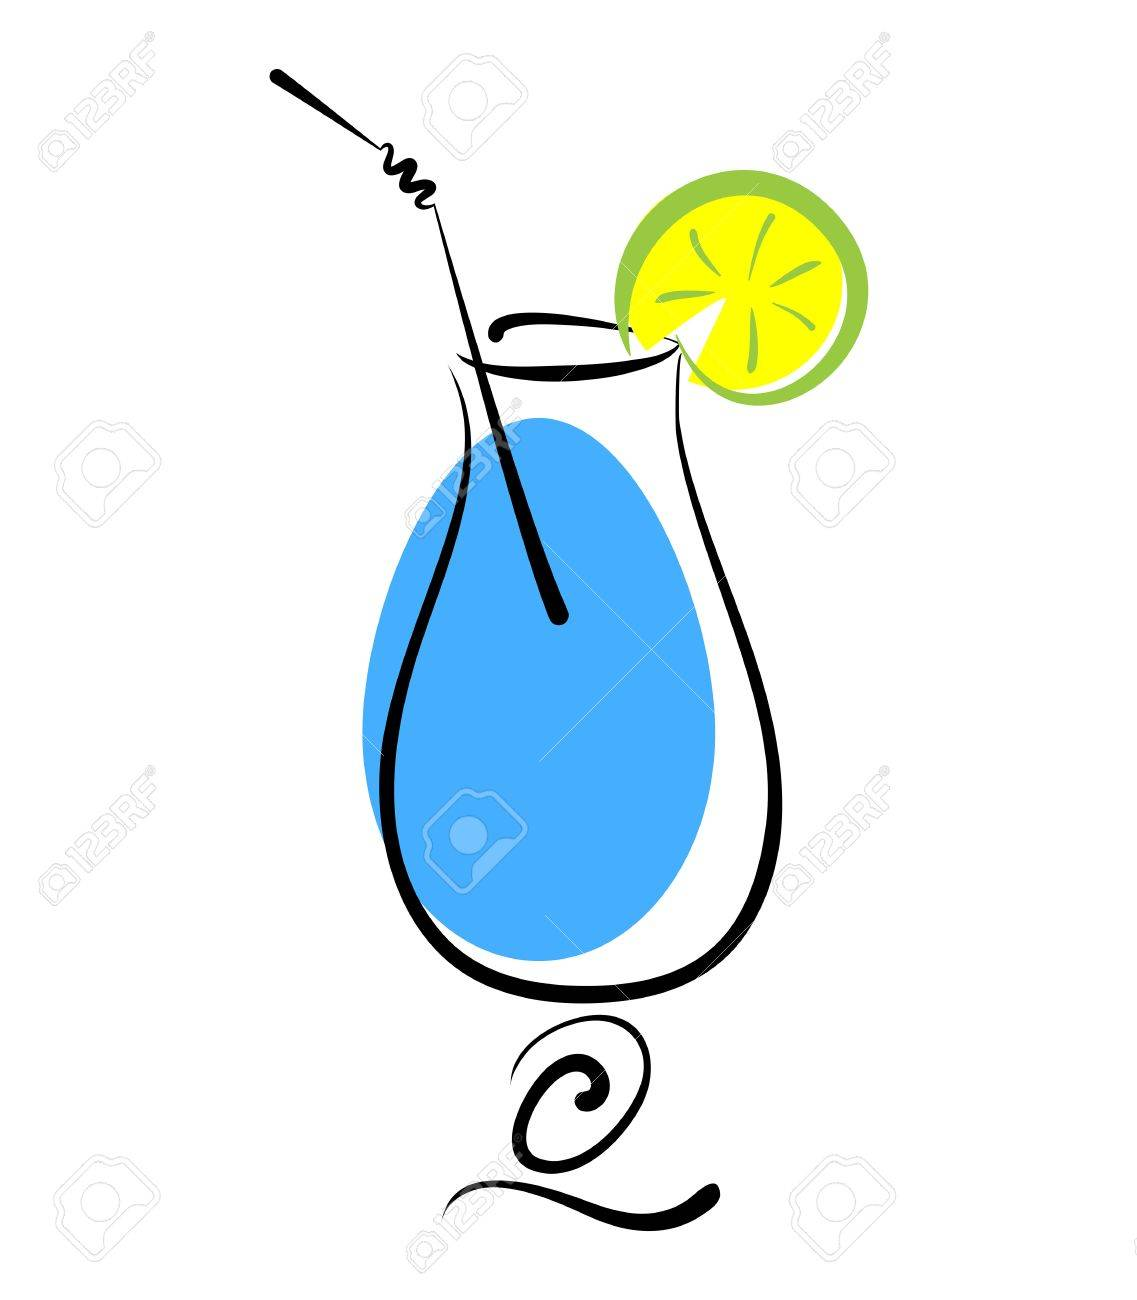 Alcohol blue cocktail in glass with straw and lemon slice on white Stock Vector - 18453388